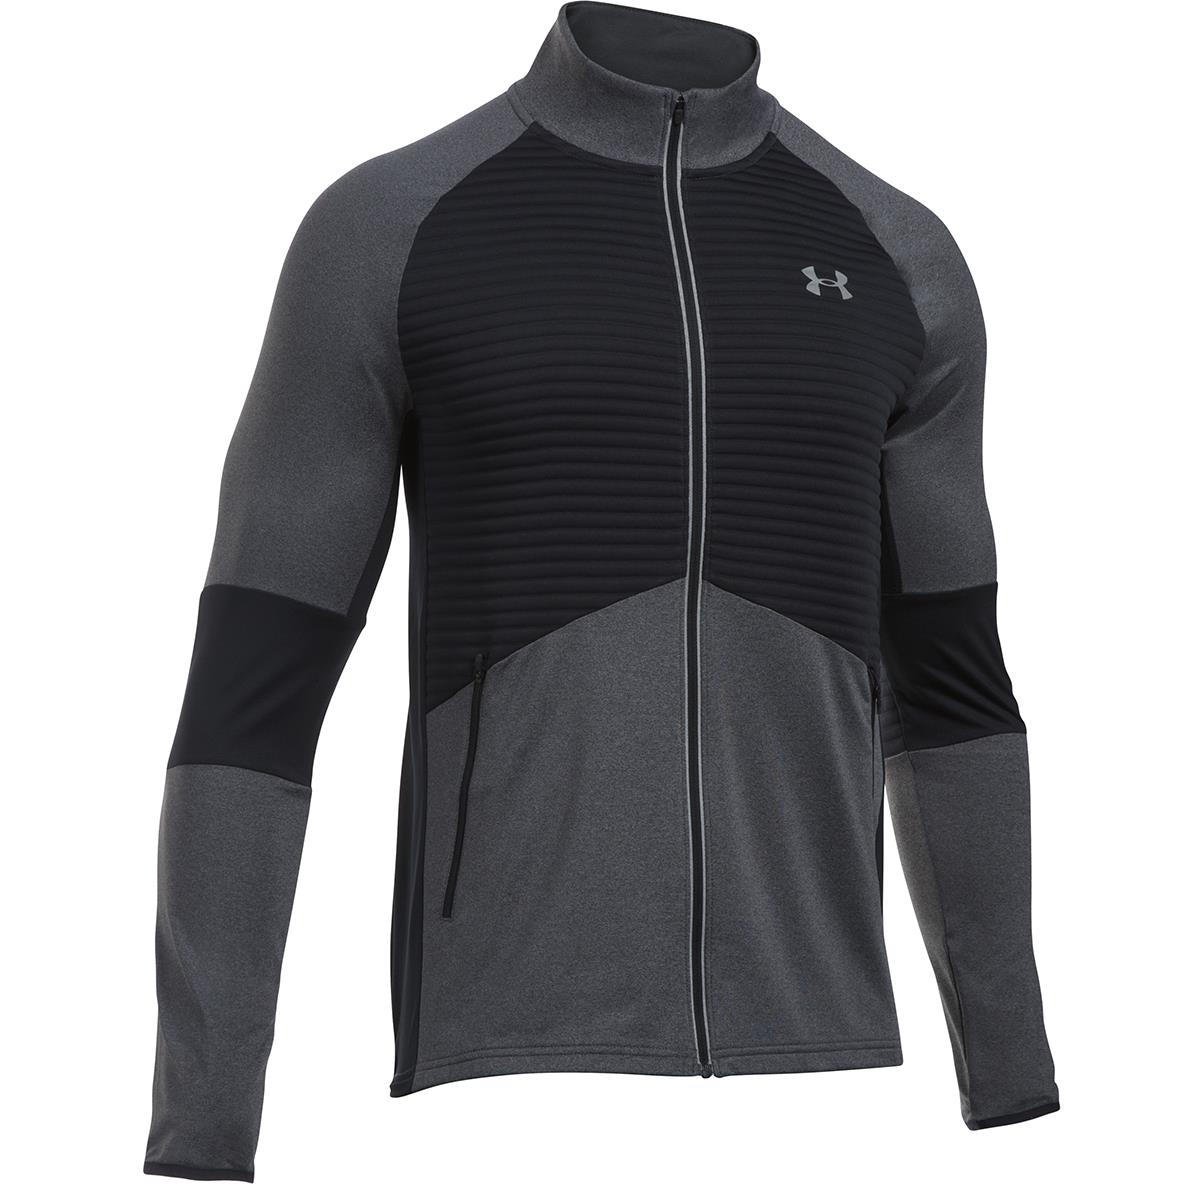 b2e3b5419a5 Under Armour No Breaks Coldgear Infrared Jacket Carbon - Front